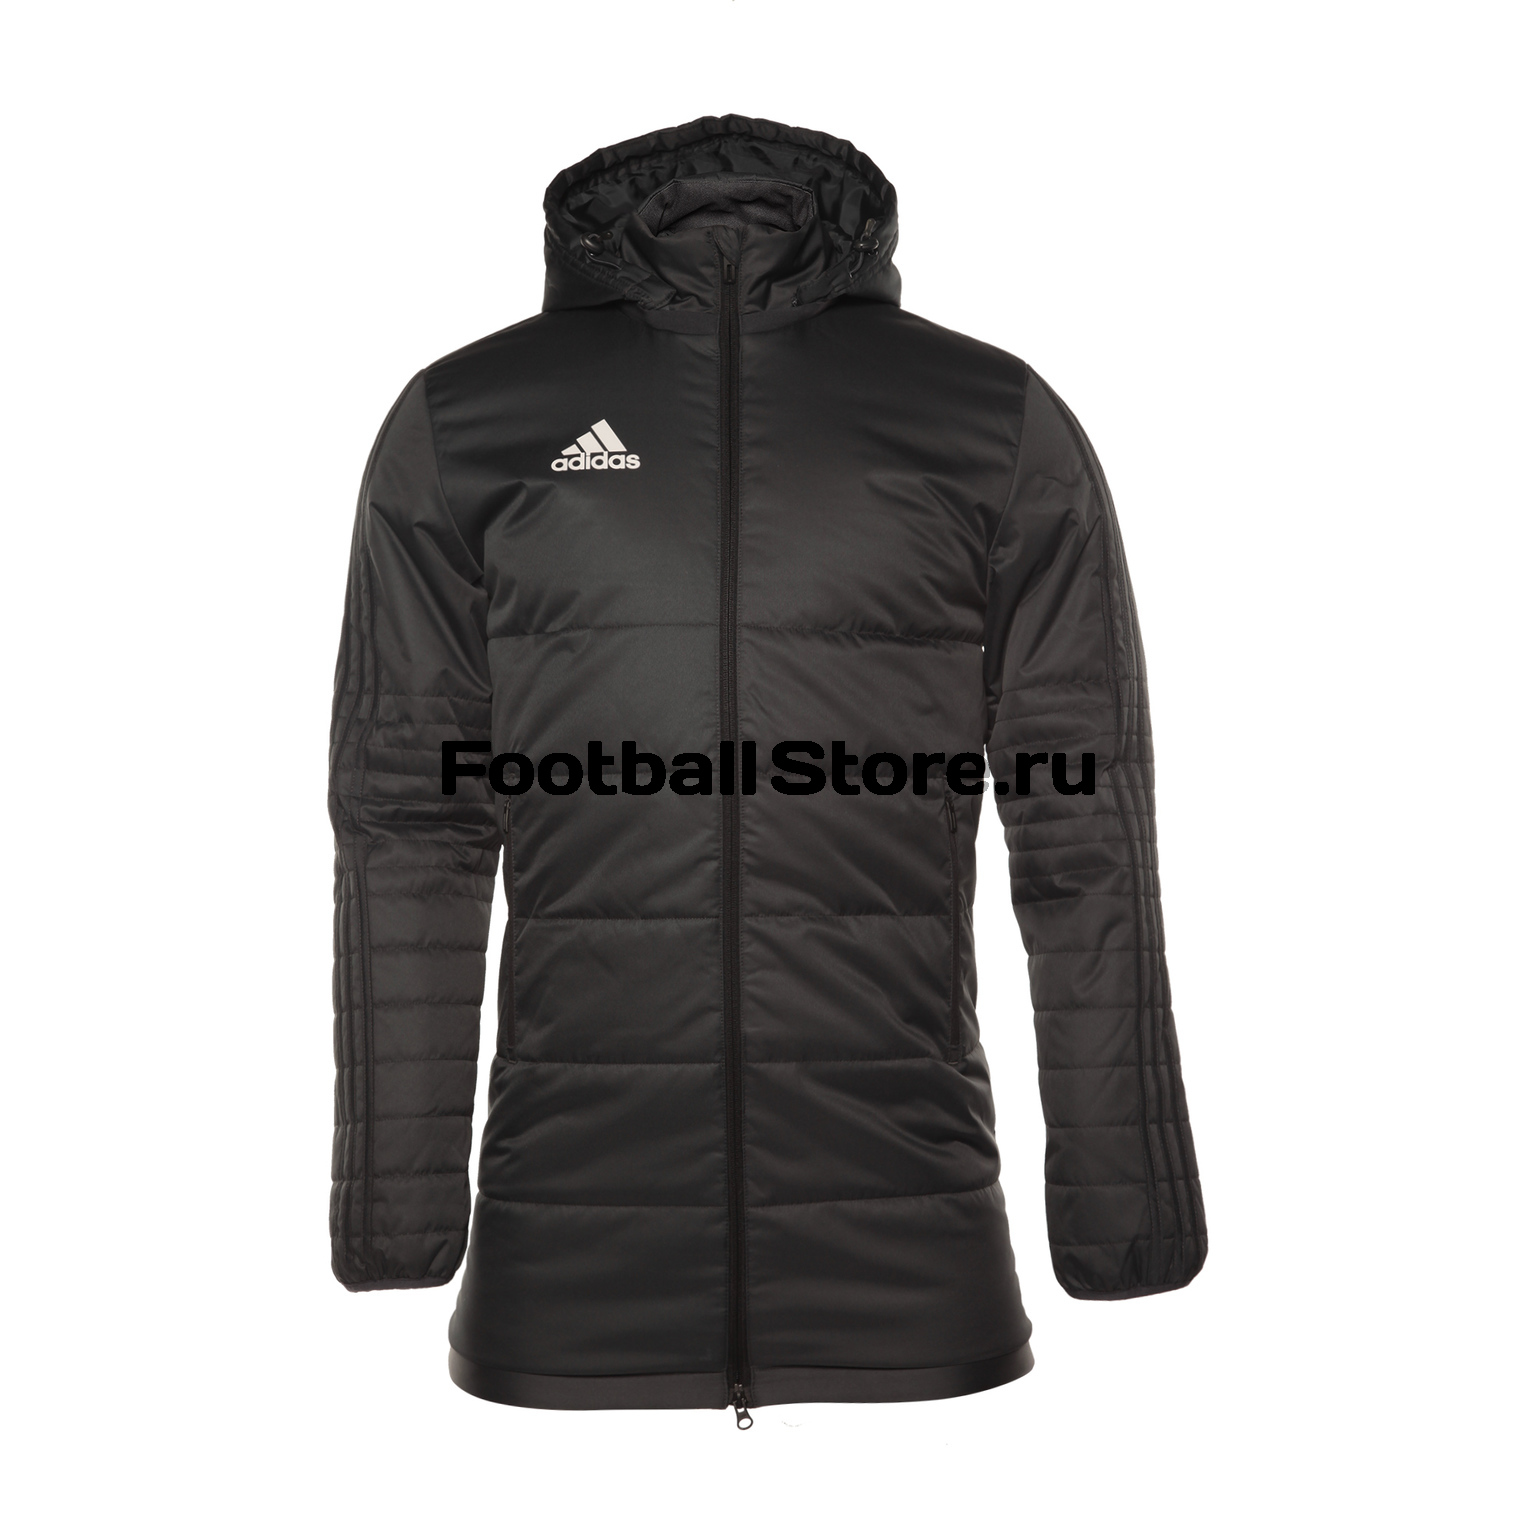 Куртки/Пуховики Adidas Куртка Adidas Tiro17 Winter JKTL BS0053